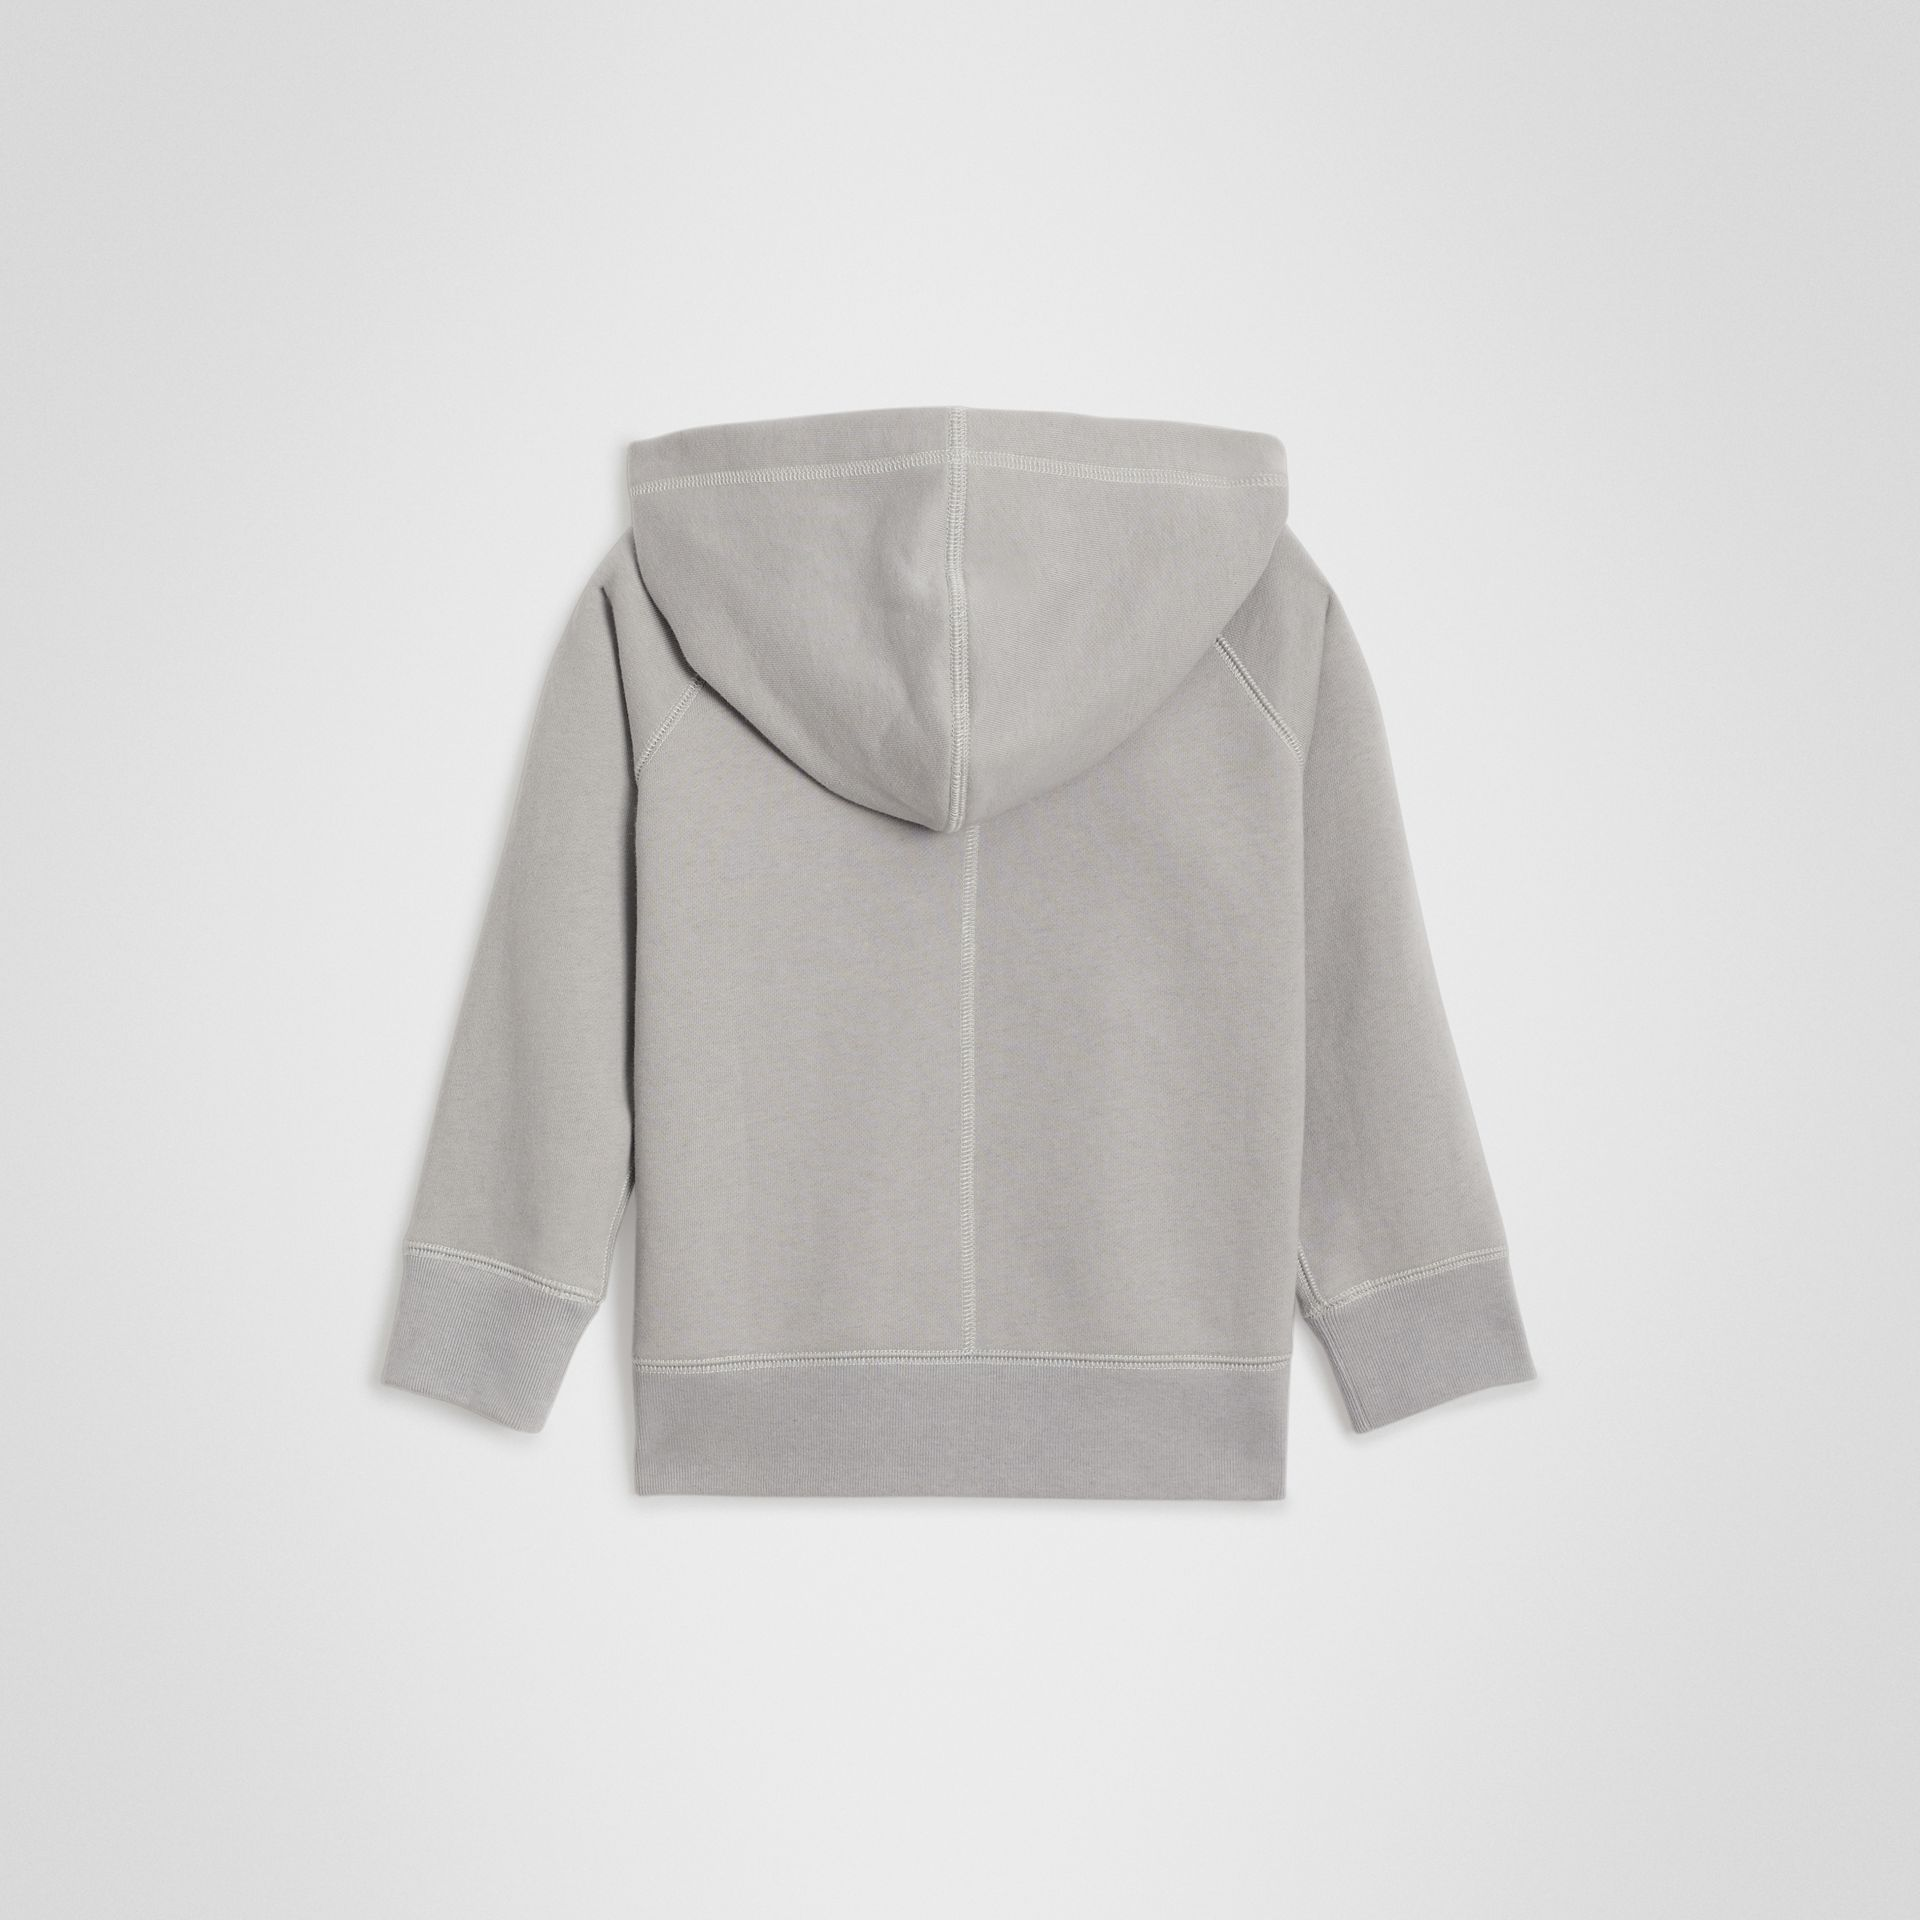 Cotton Jersey Hooded Top in Chalk Grey Melange | Burberry - gallery image 3